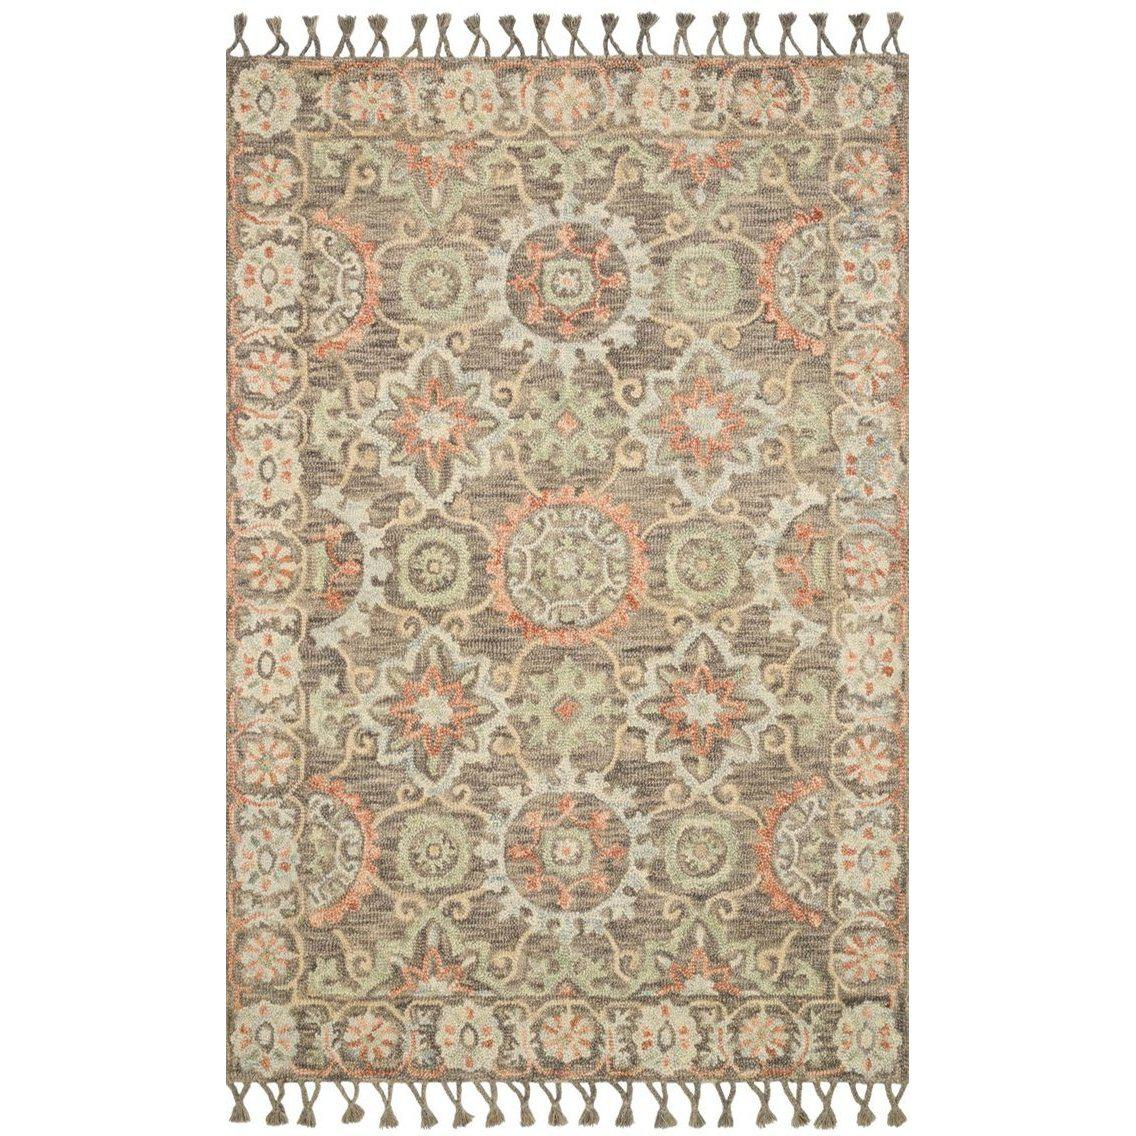 Joanna Gaines Kasuri Rug Collection - Sand/Multi